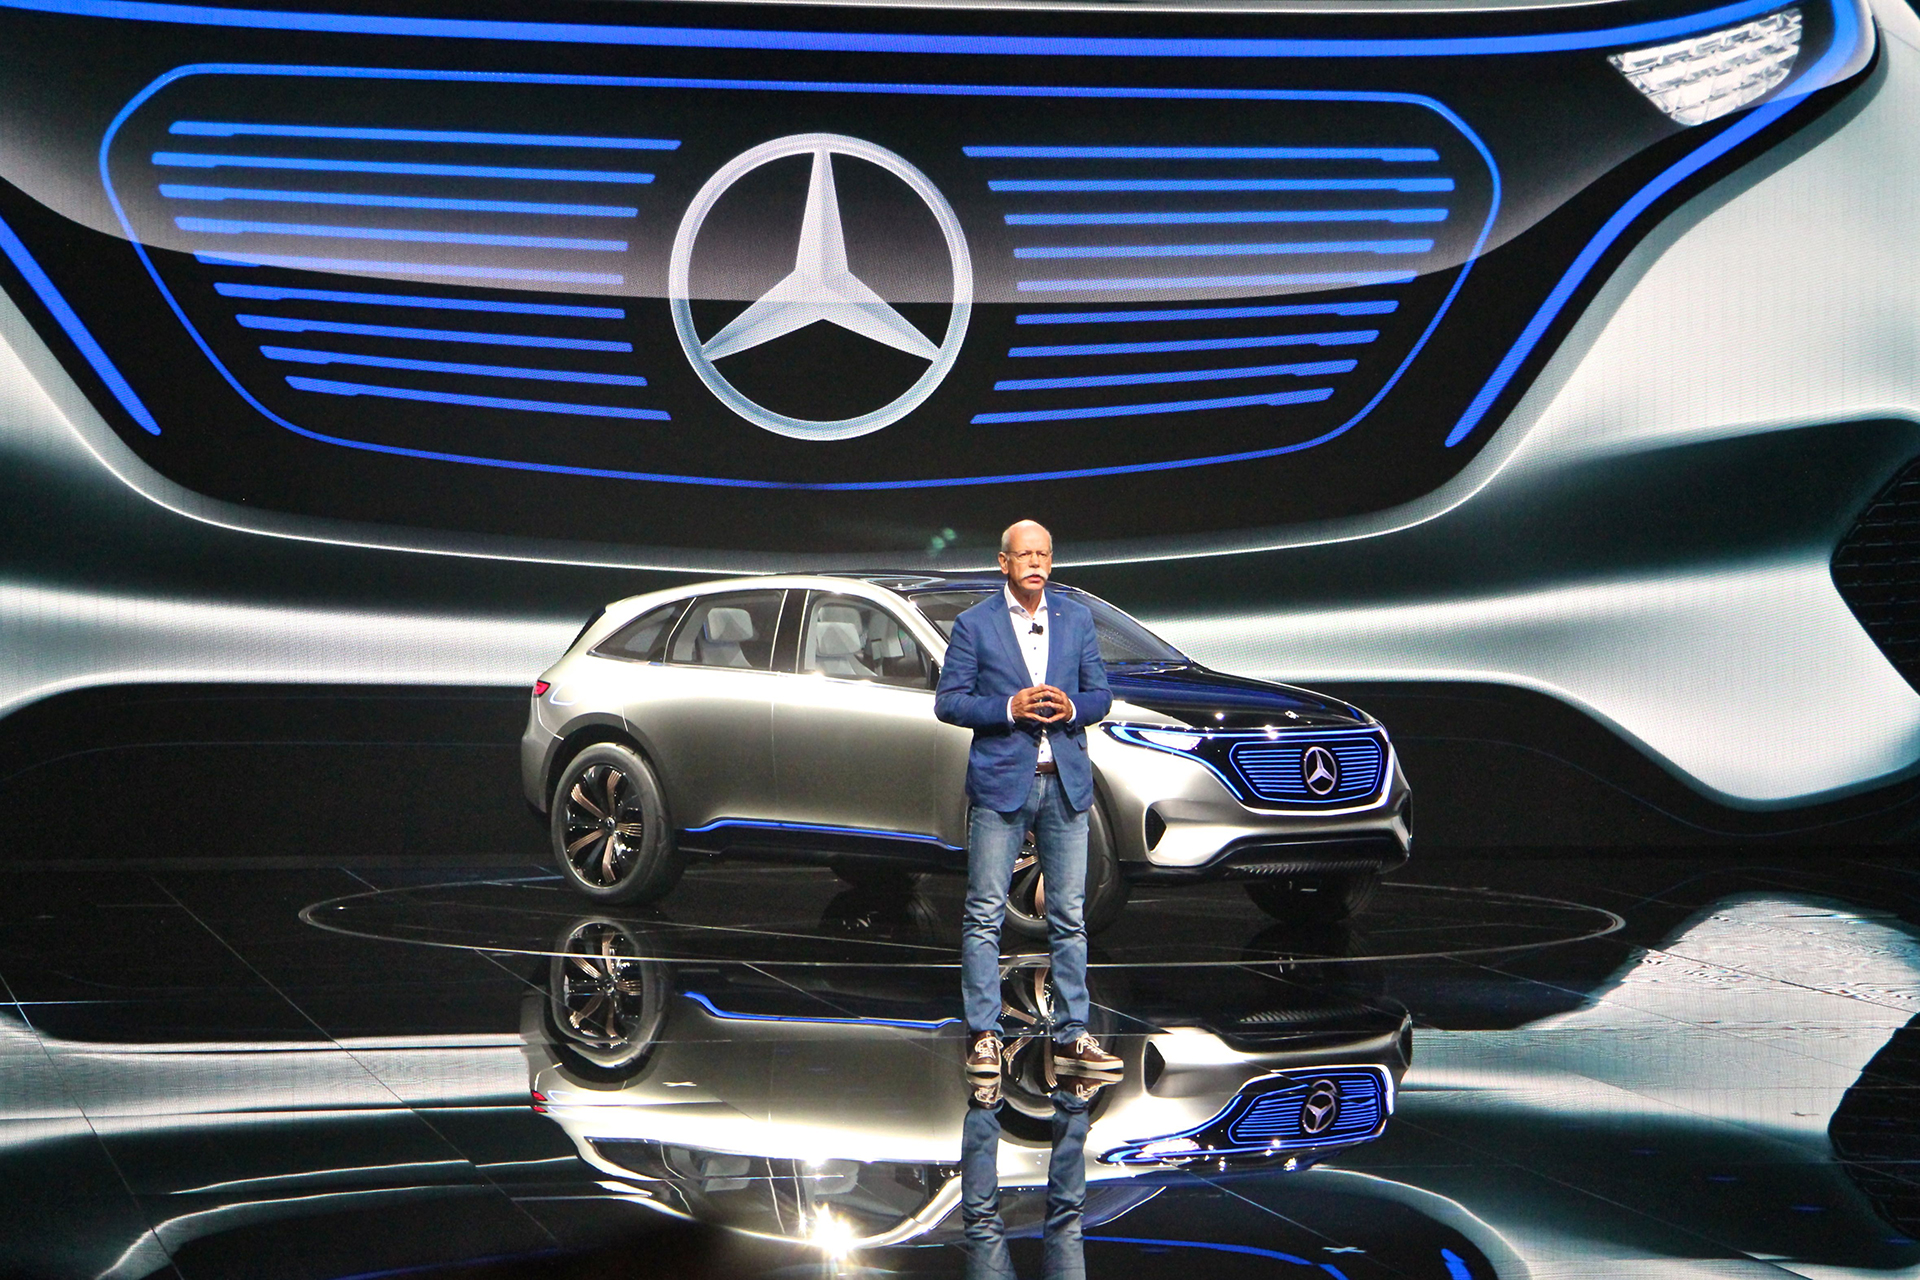 Daimler pres conference - Mercedes-Benz EQ- 2016 - Mondial Auto - photo Ludo Ferrari